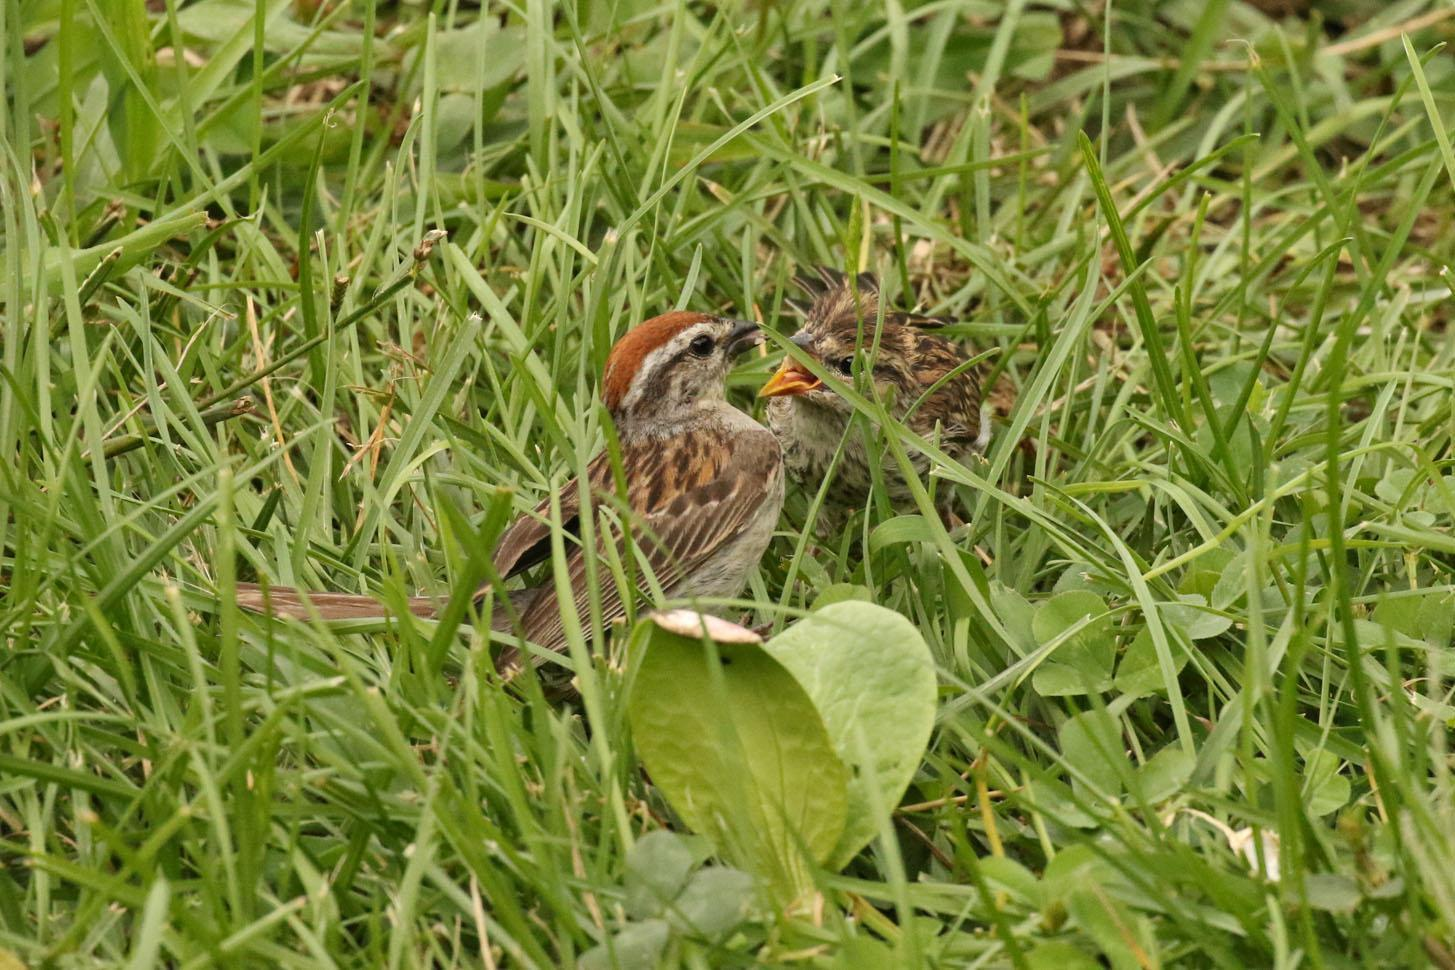 Chipping Sparrow Photo by Kristy Baker